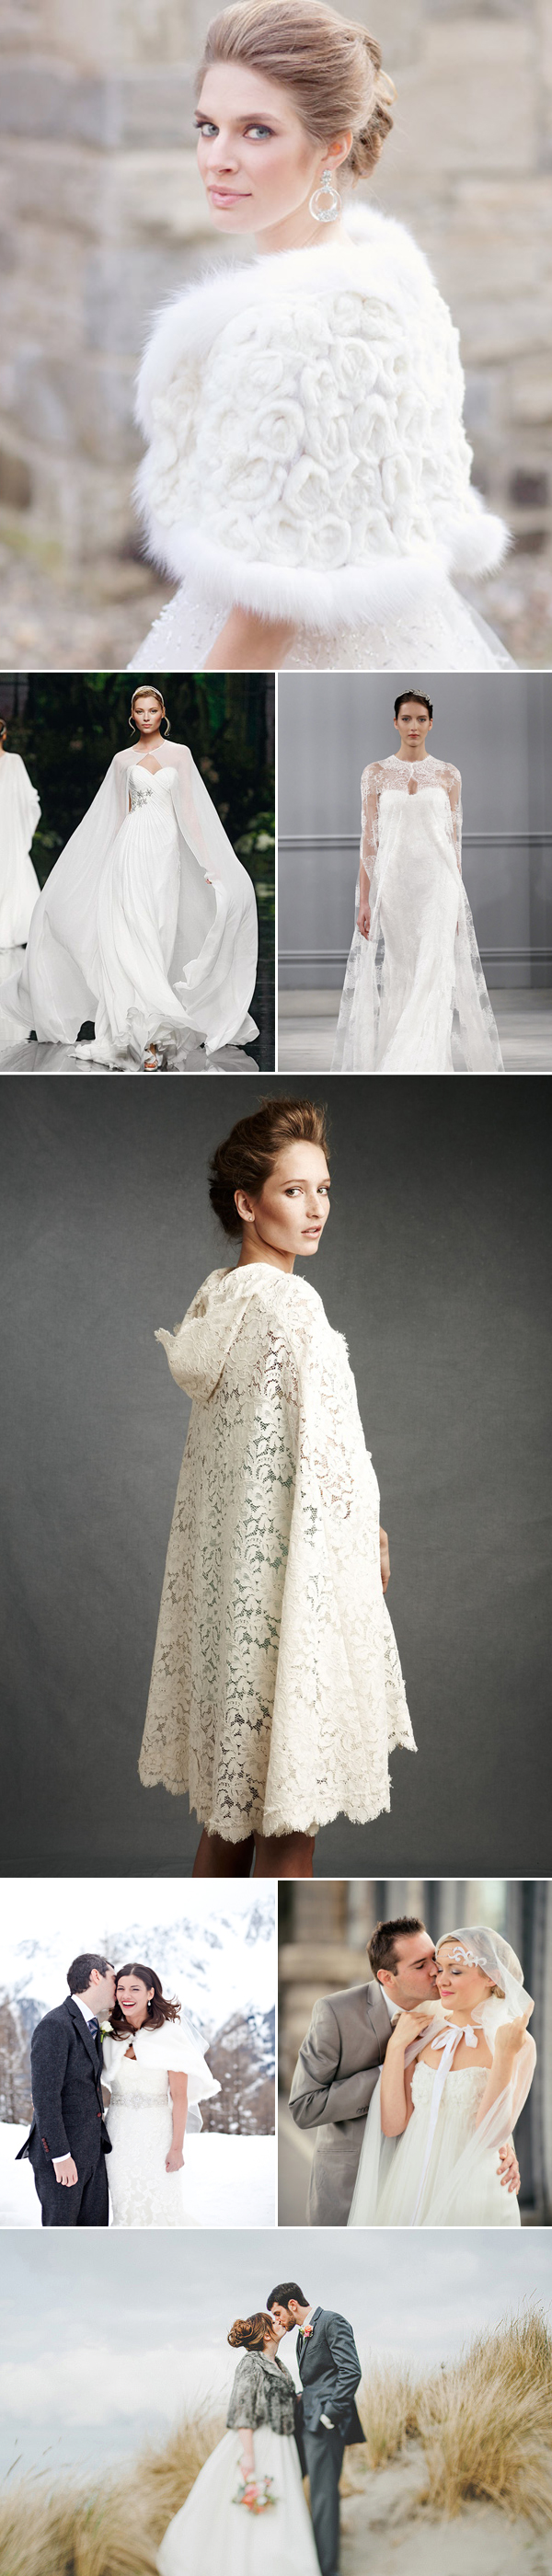 Bridal-coverup02-capes